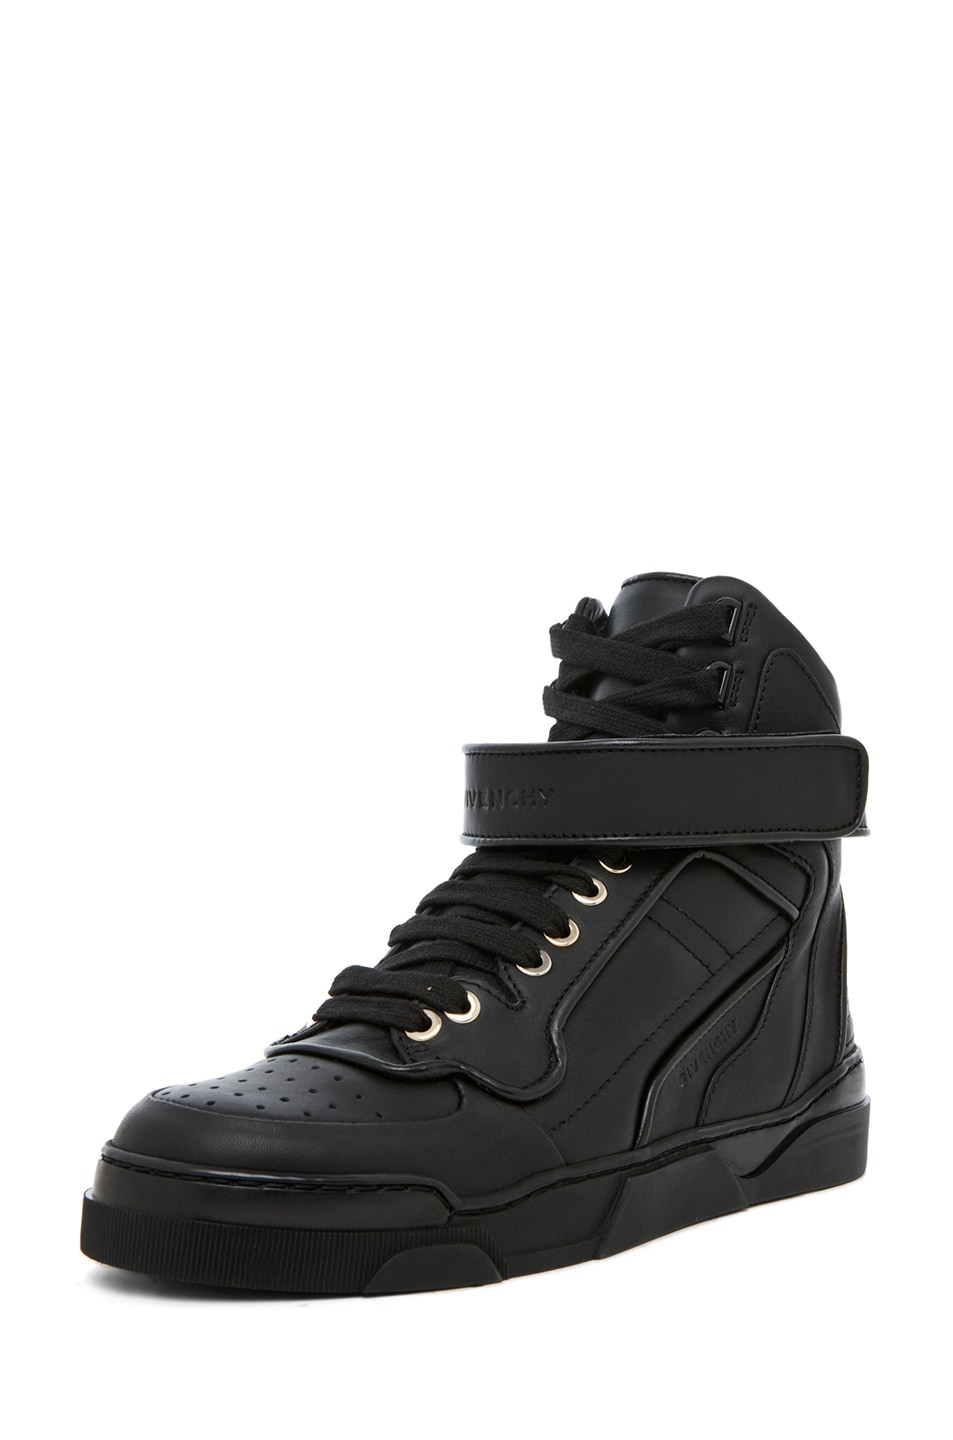 Image 2 of GIVENCHY Sneaker in Black